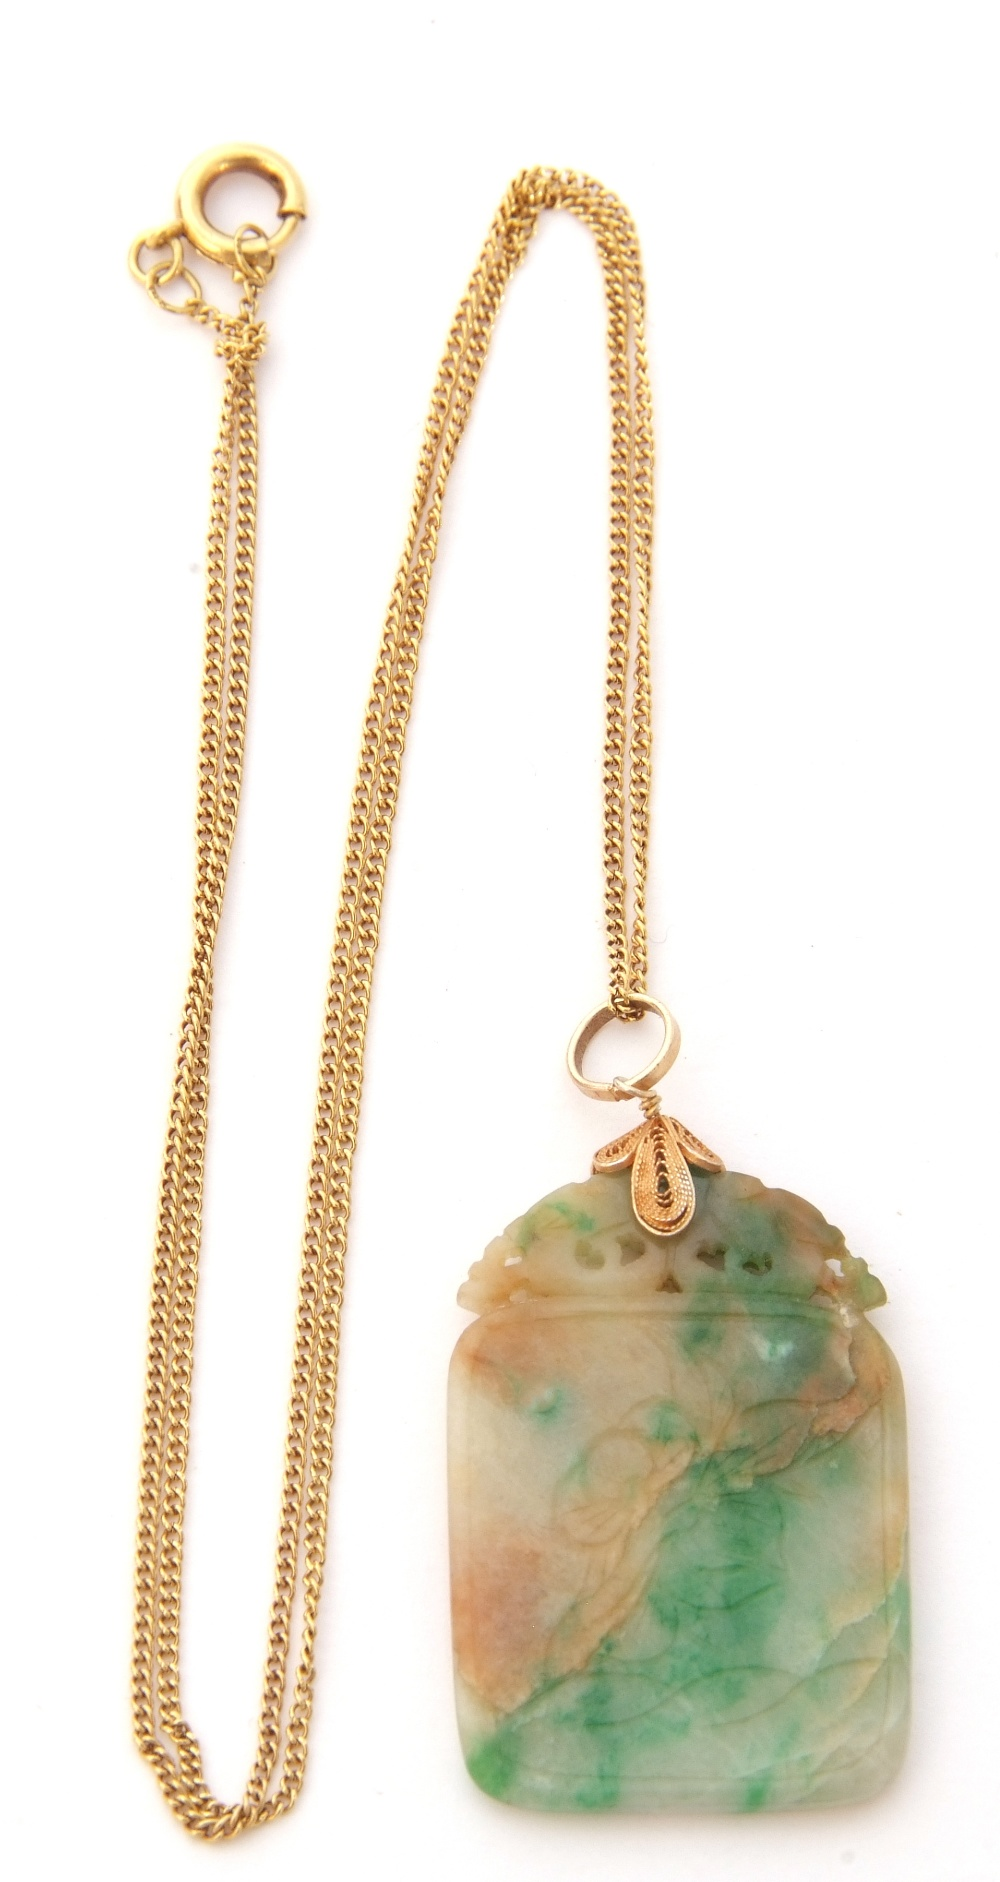 Modern jade pendant, 3 x 2cm, on a silver gilt bale, suspended from a 14K marked chain